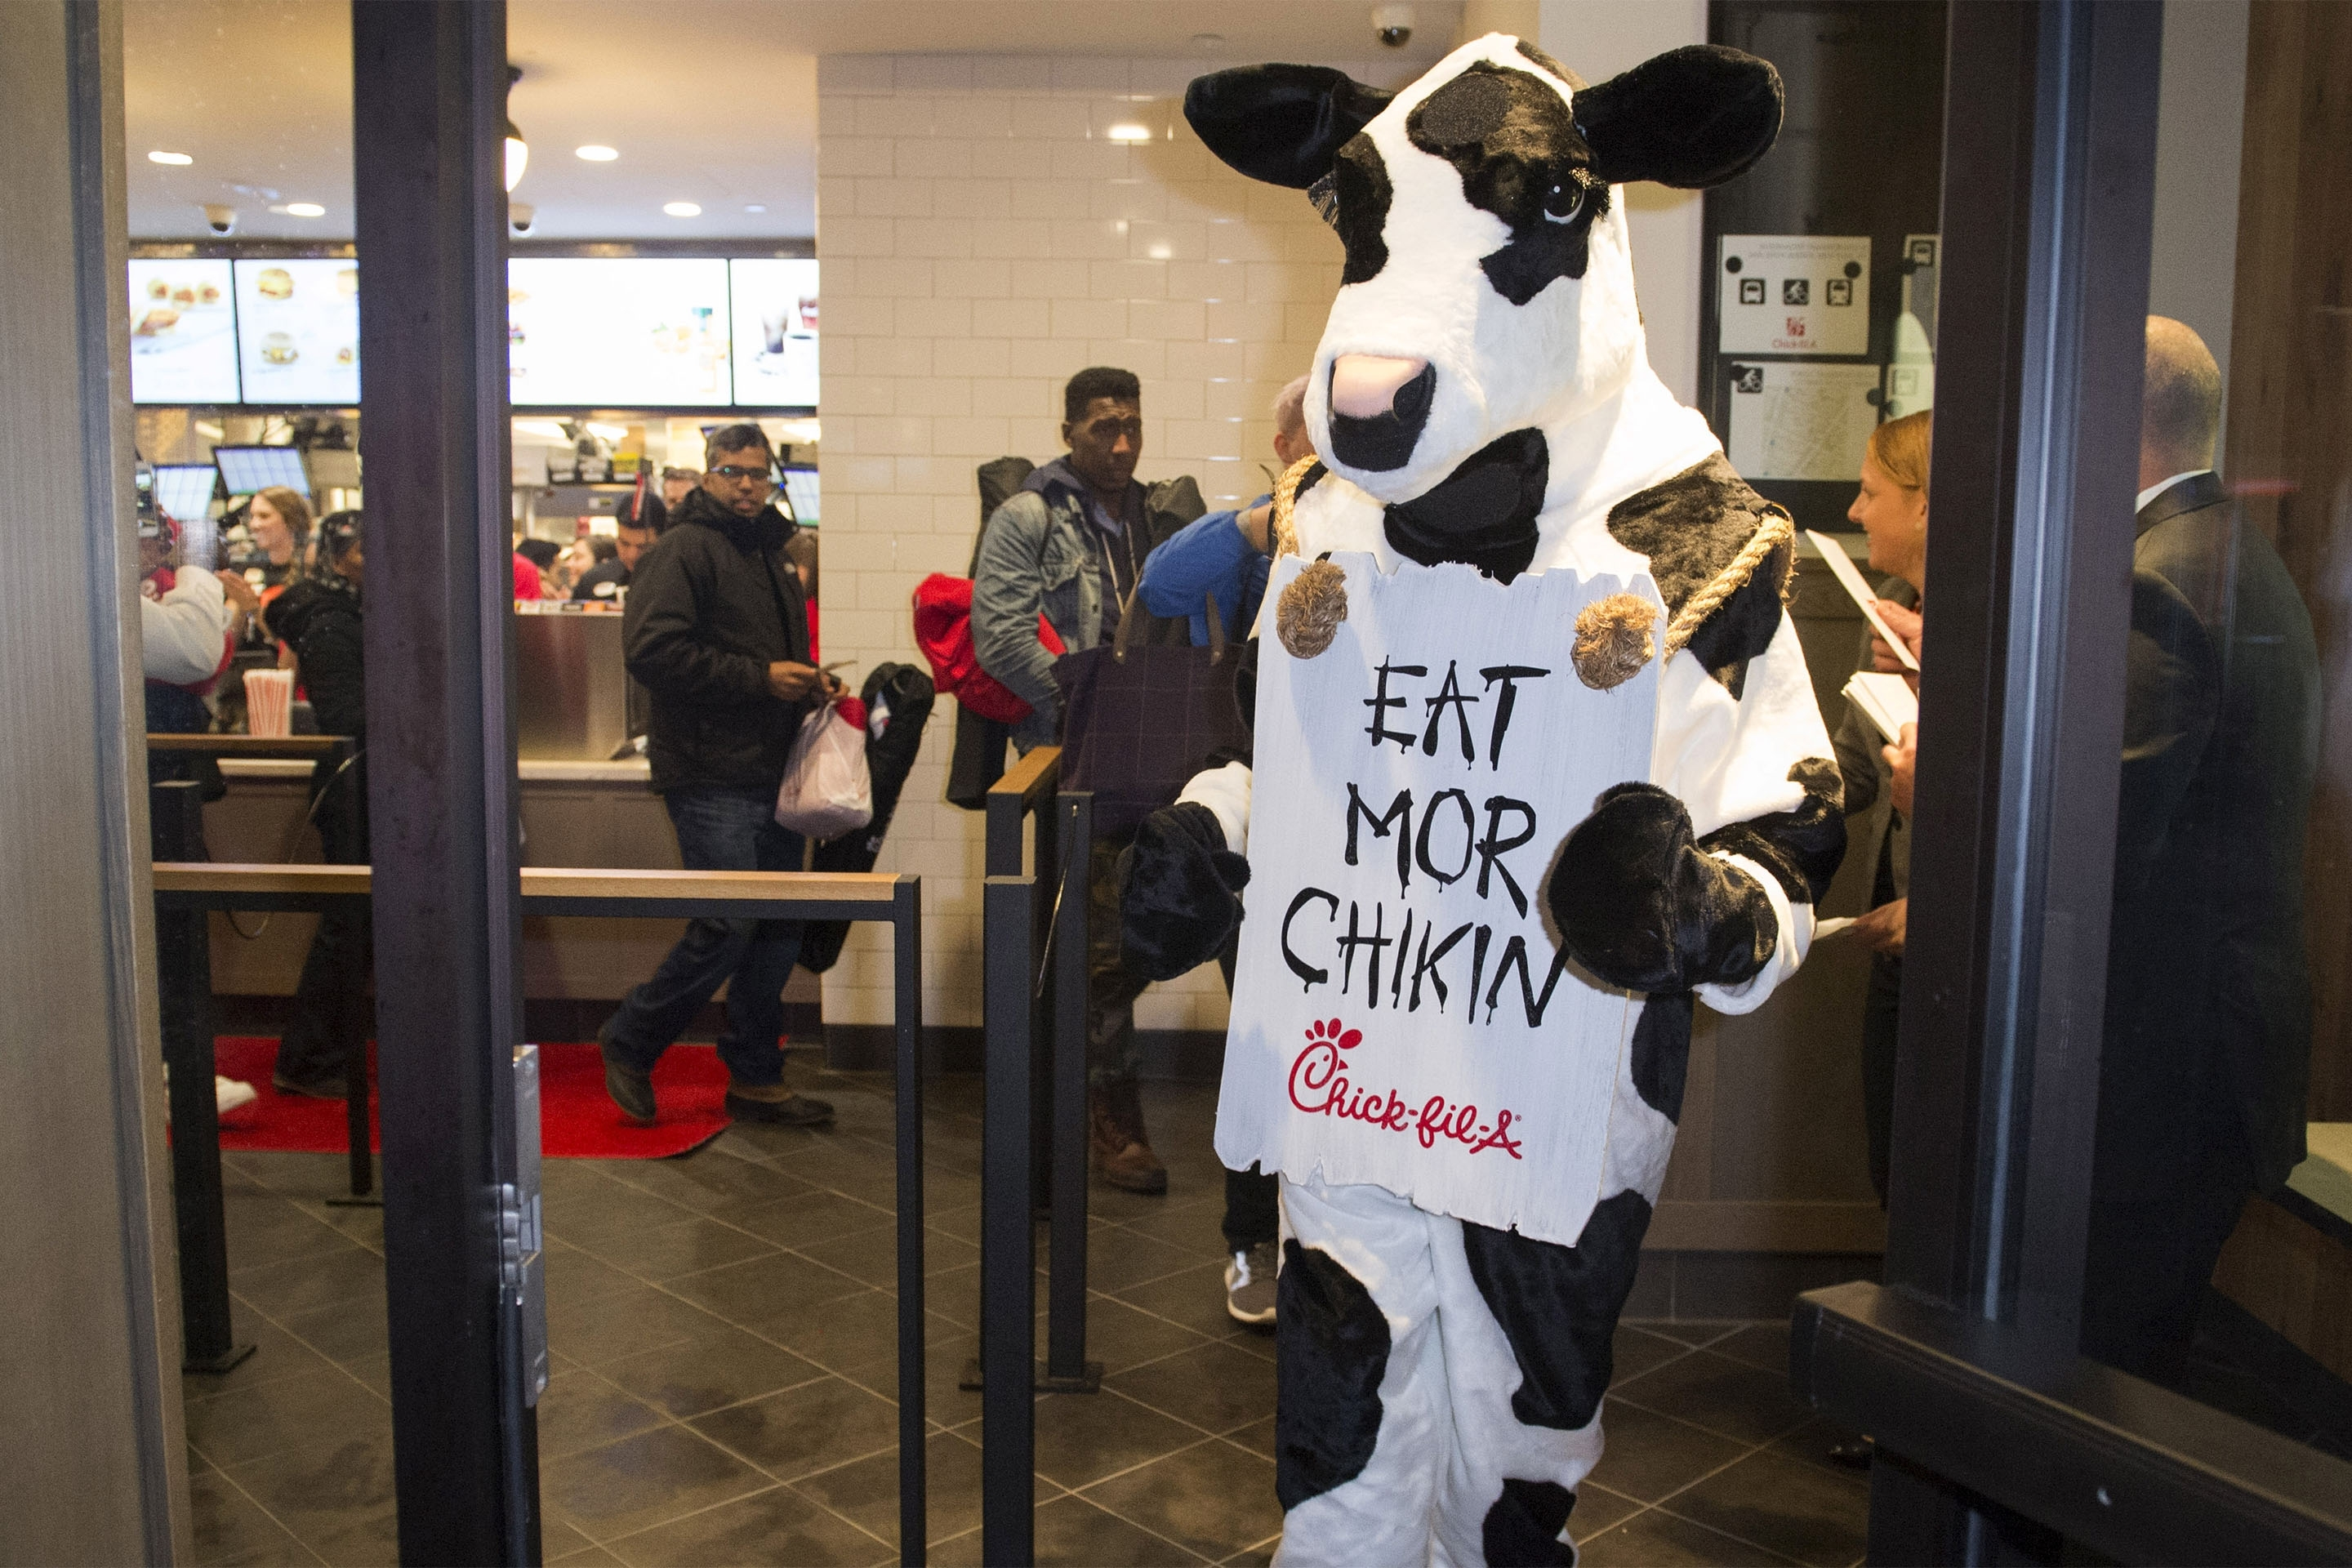 Chick-Fil-A Faces Backlash After Dropping The Cow Calendar | Fortune regarding Chick-Fil-A Calender 2020